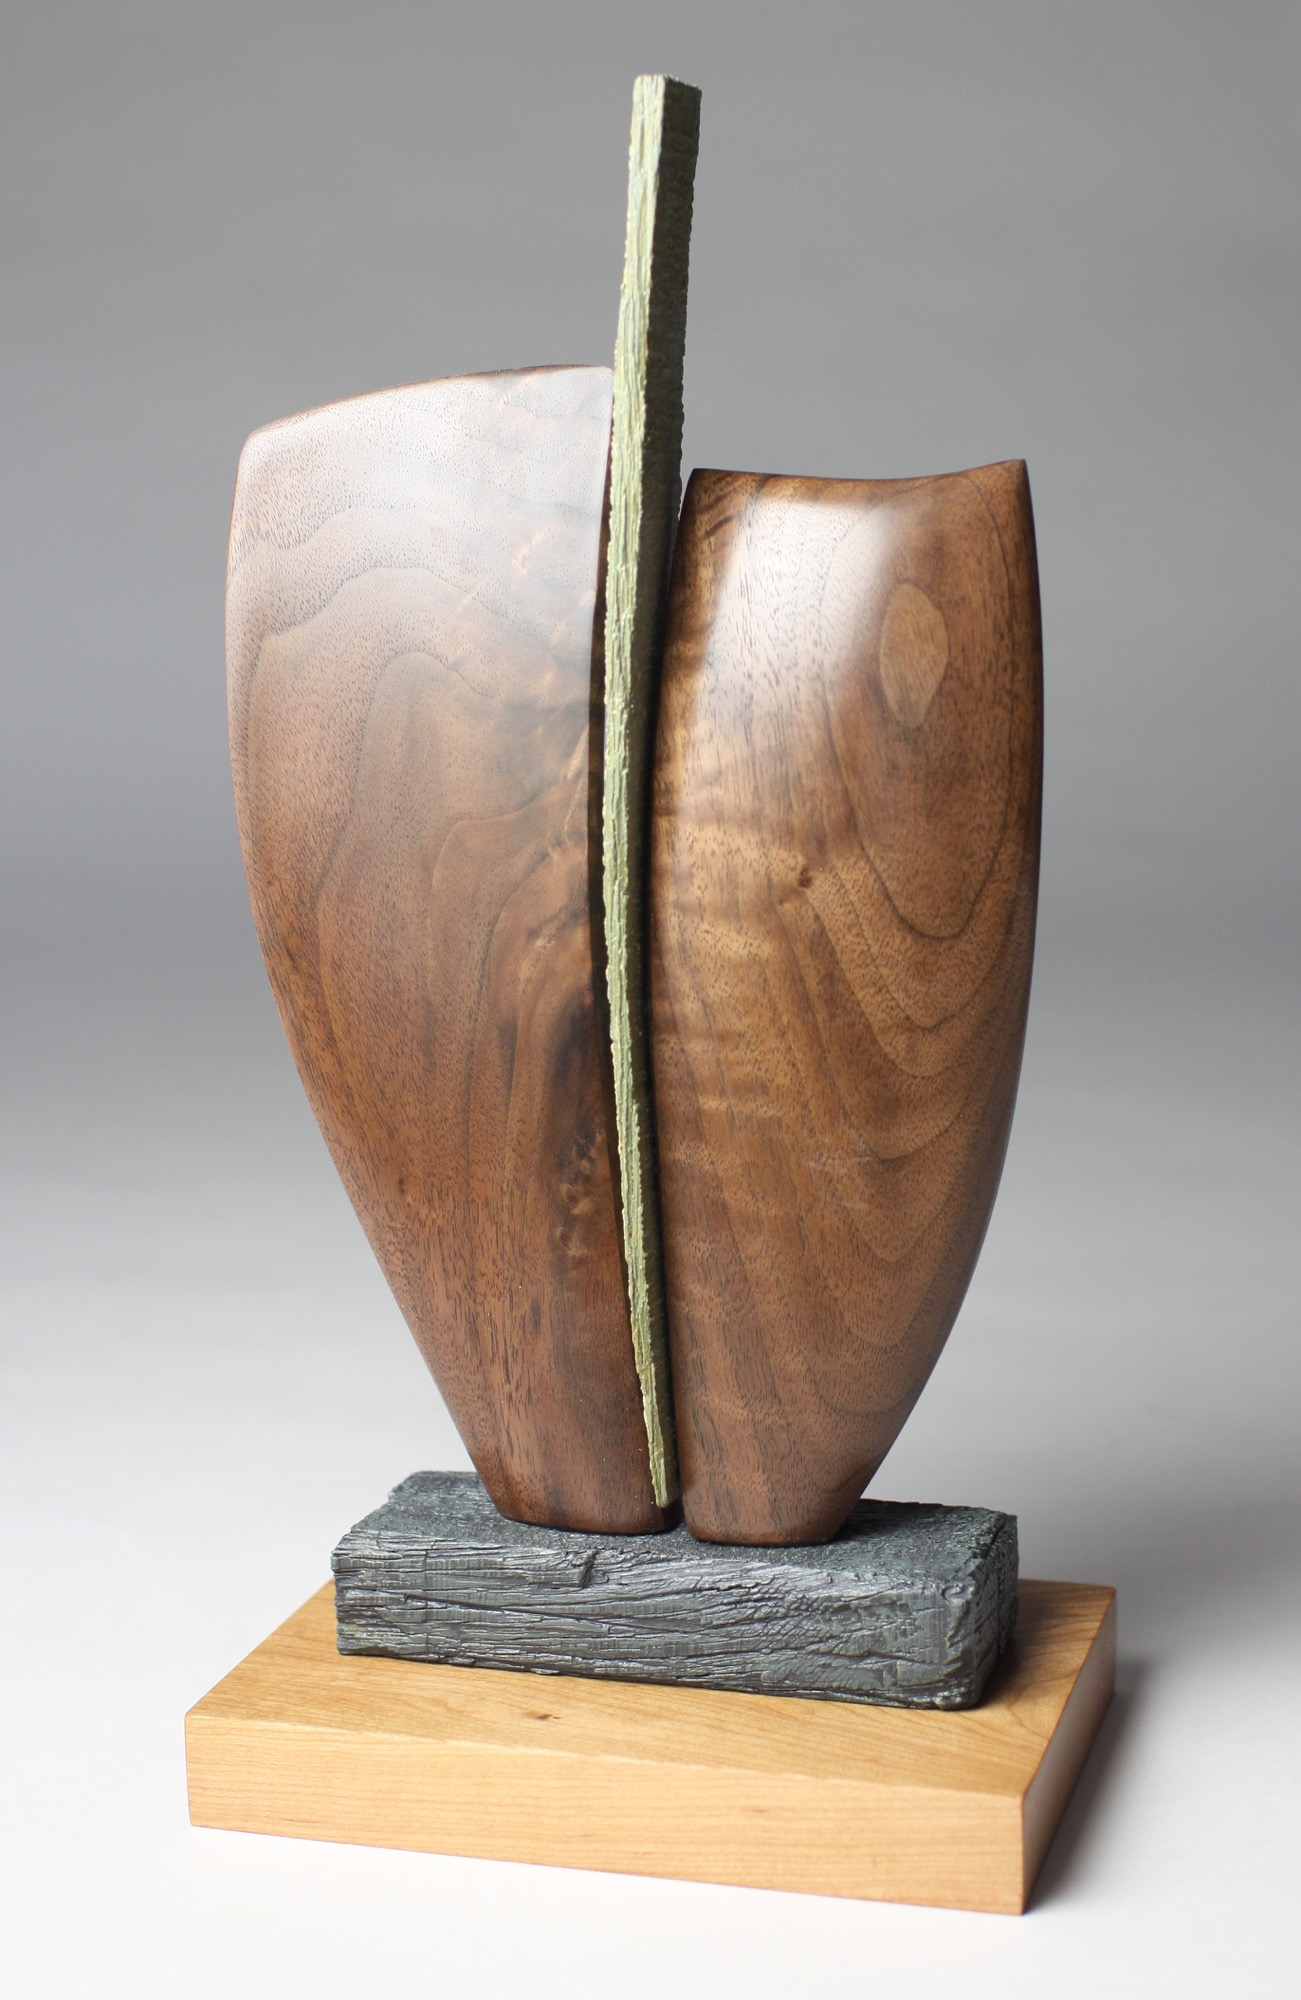 Sculpture #2 (View of Back)